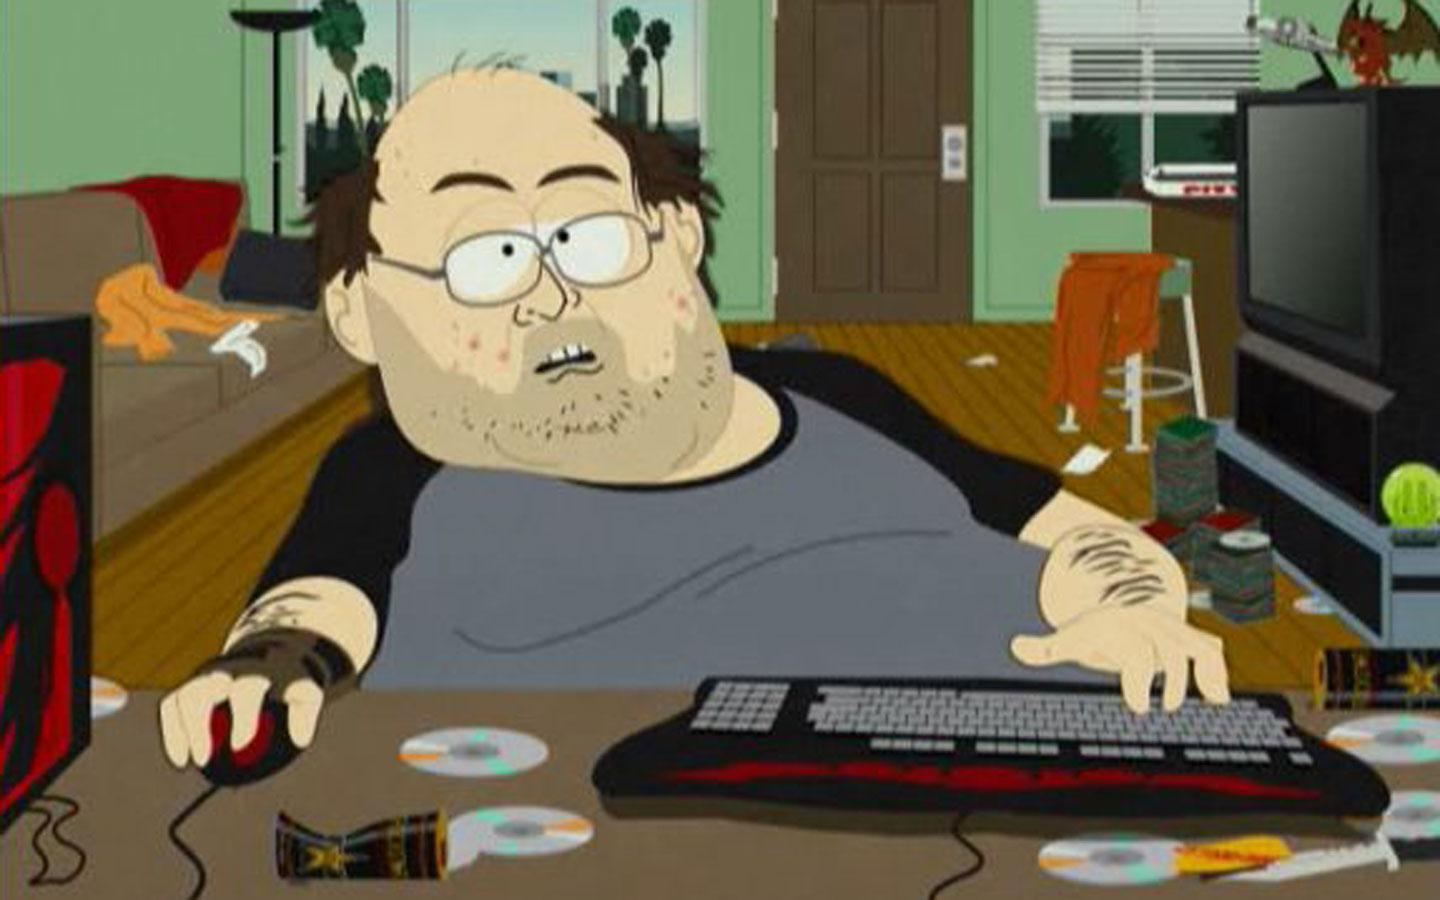 South-Park-World-of-Warcraft-dude.jpg